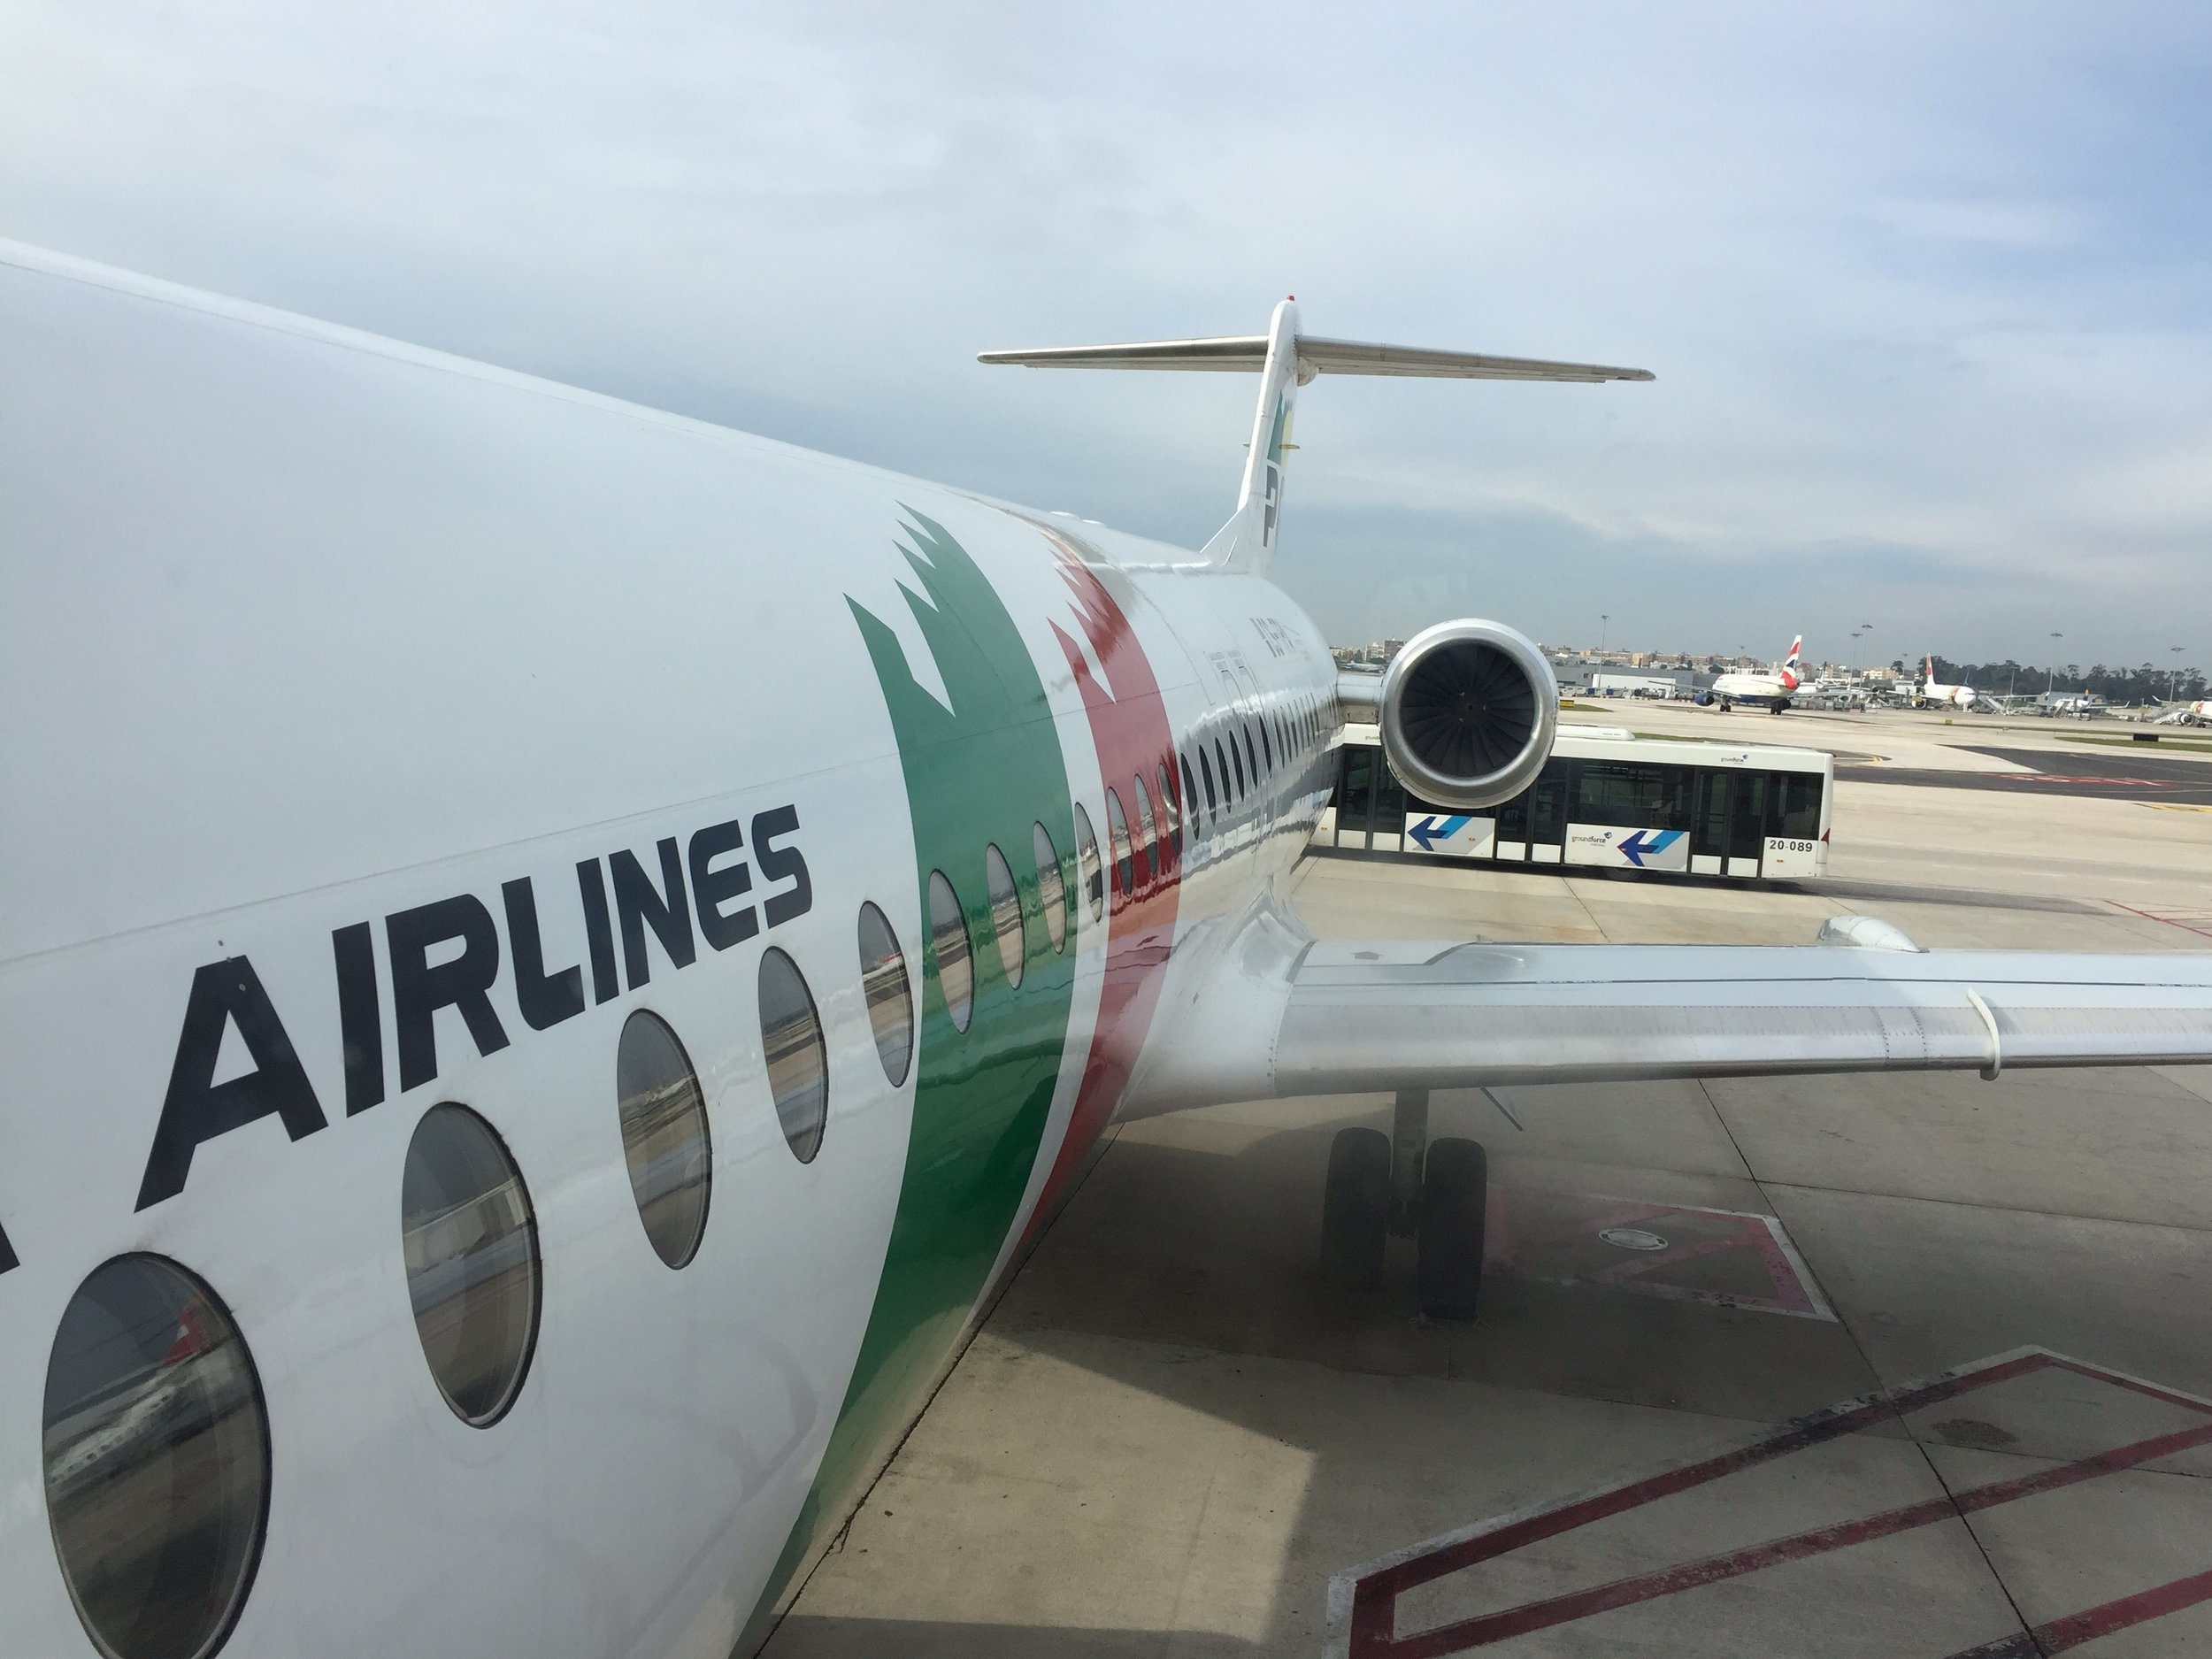 A view of the Fokker 100 while boarding